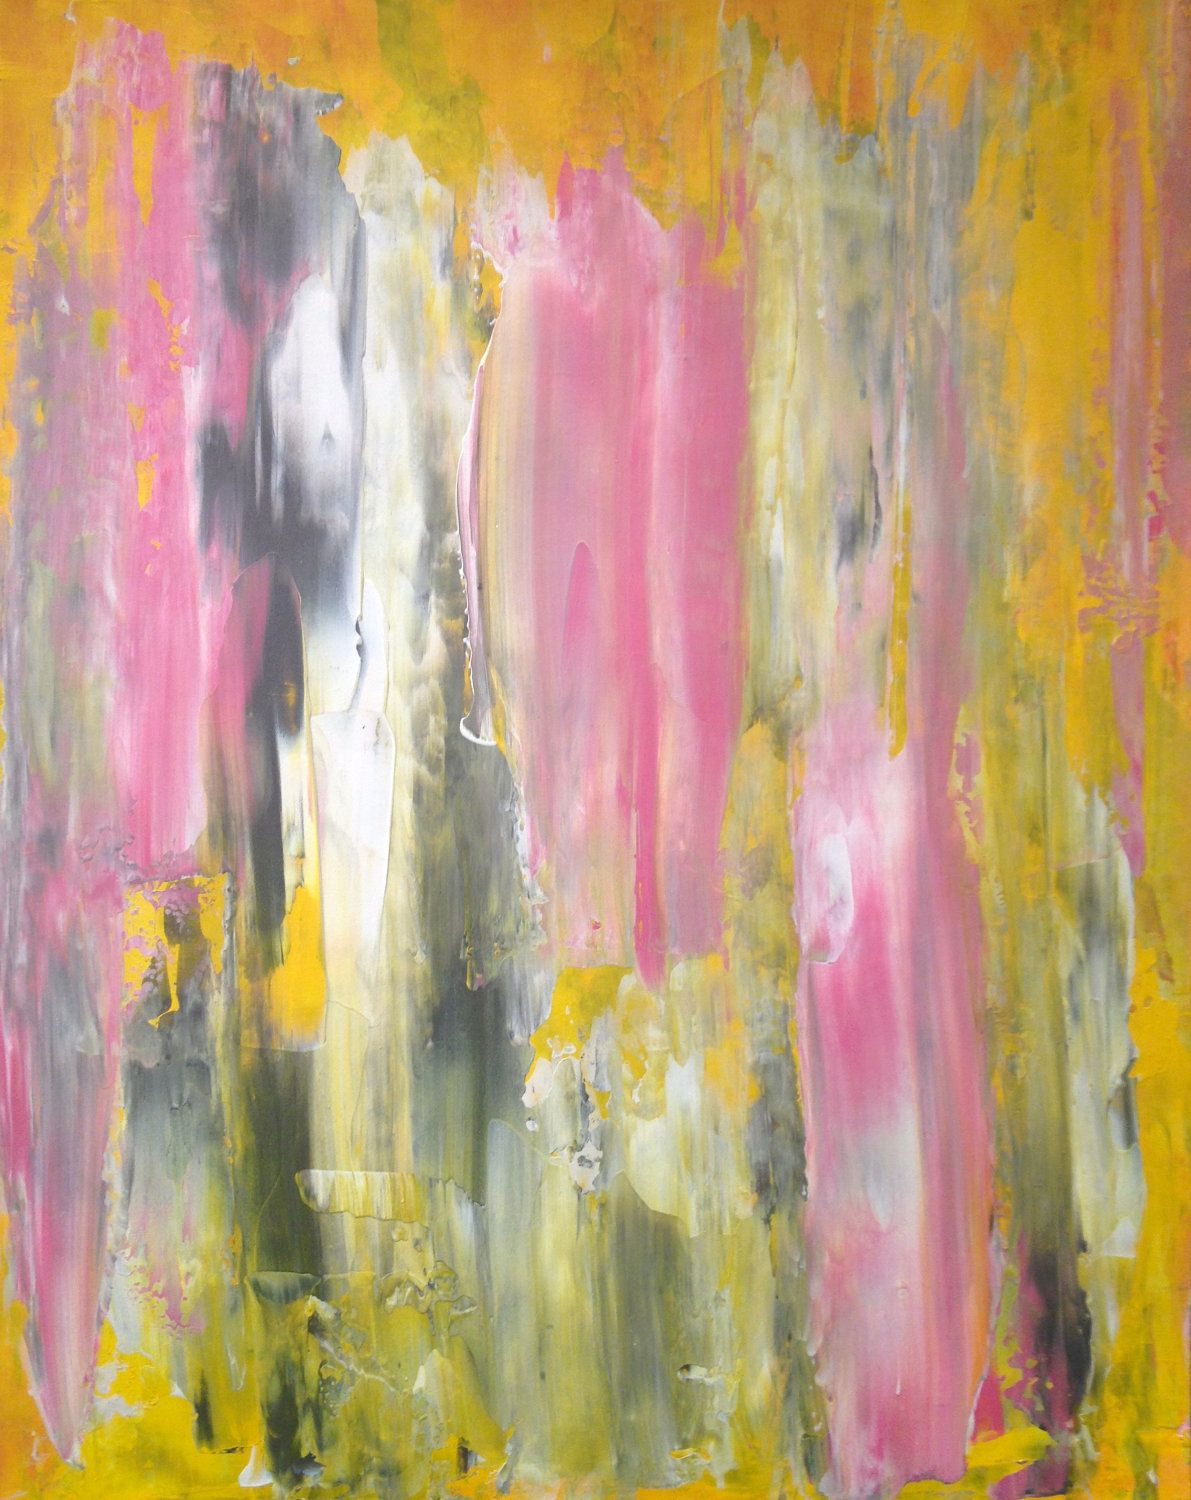 Acrylic Abstract Art Painting Grey Yellow Pink And White - Modern Contemporary Original 11 X